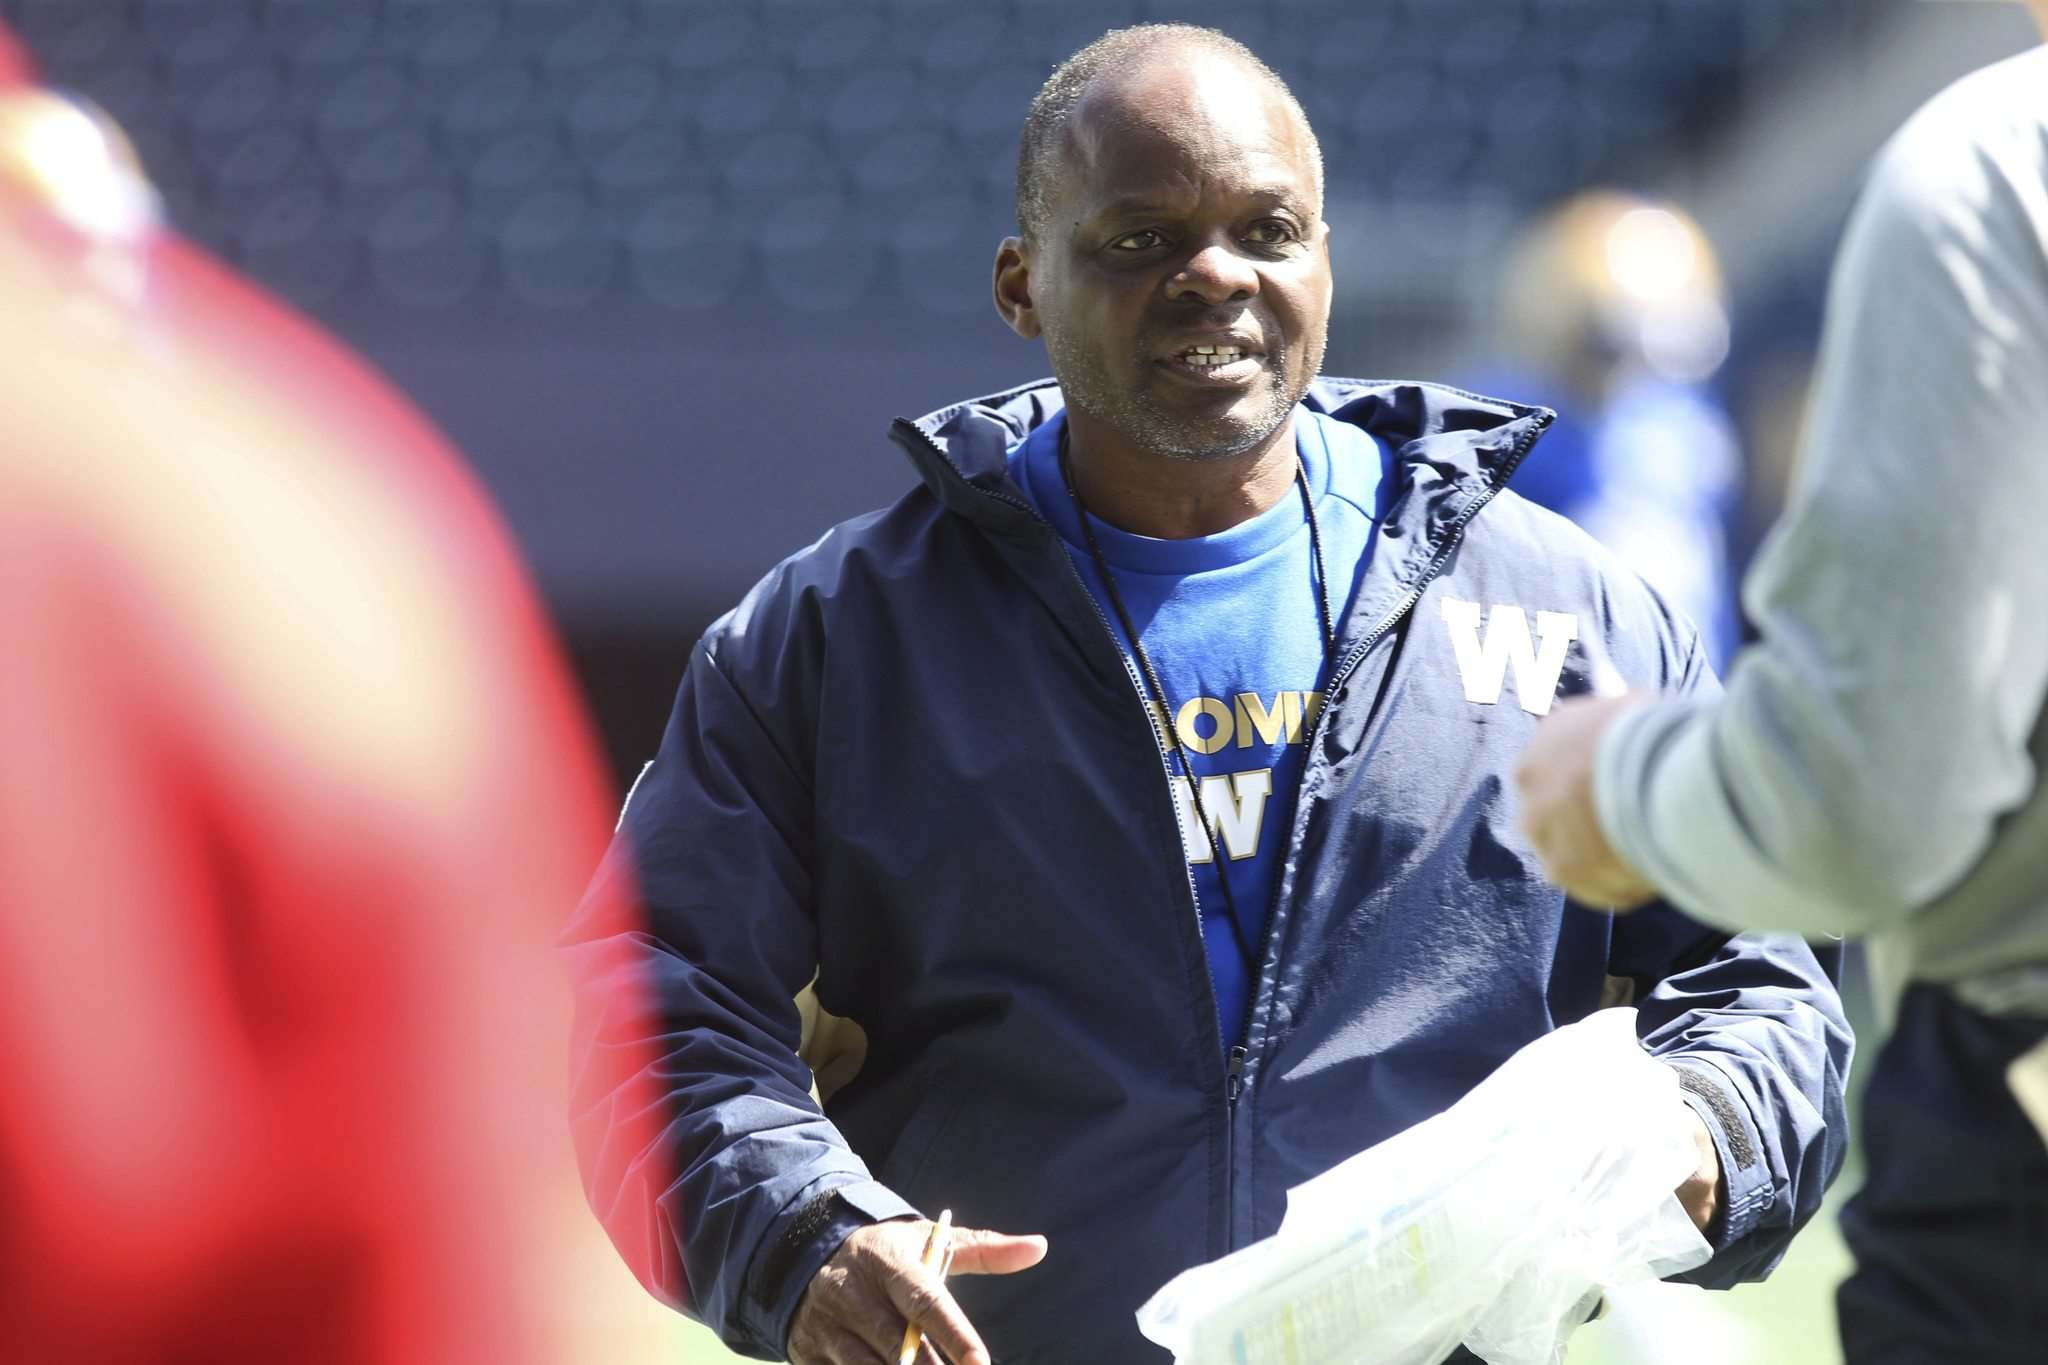 RUTH BONNEVILLE / WINNIPEG FREE PRESS</p><p>Winnipeg Blue Bomber defensive coordinator Richie Hall likes the players he has to work with on the team.</p>